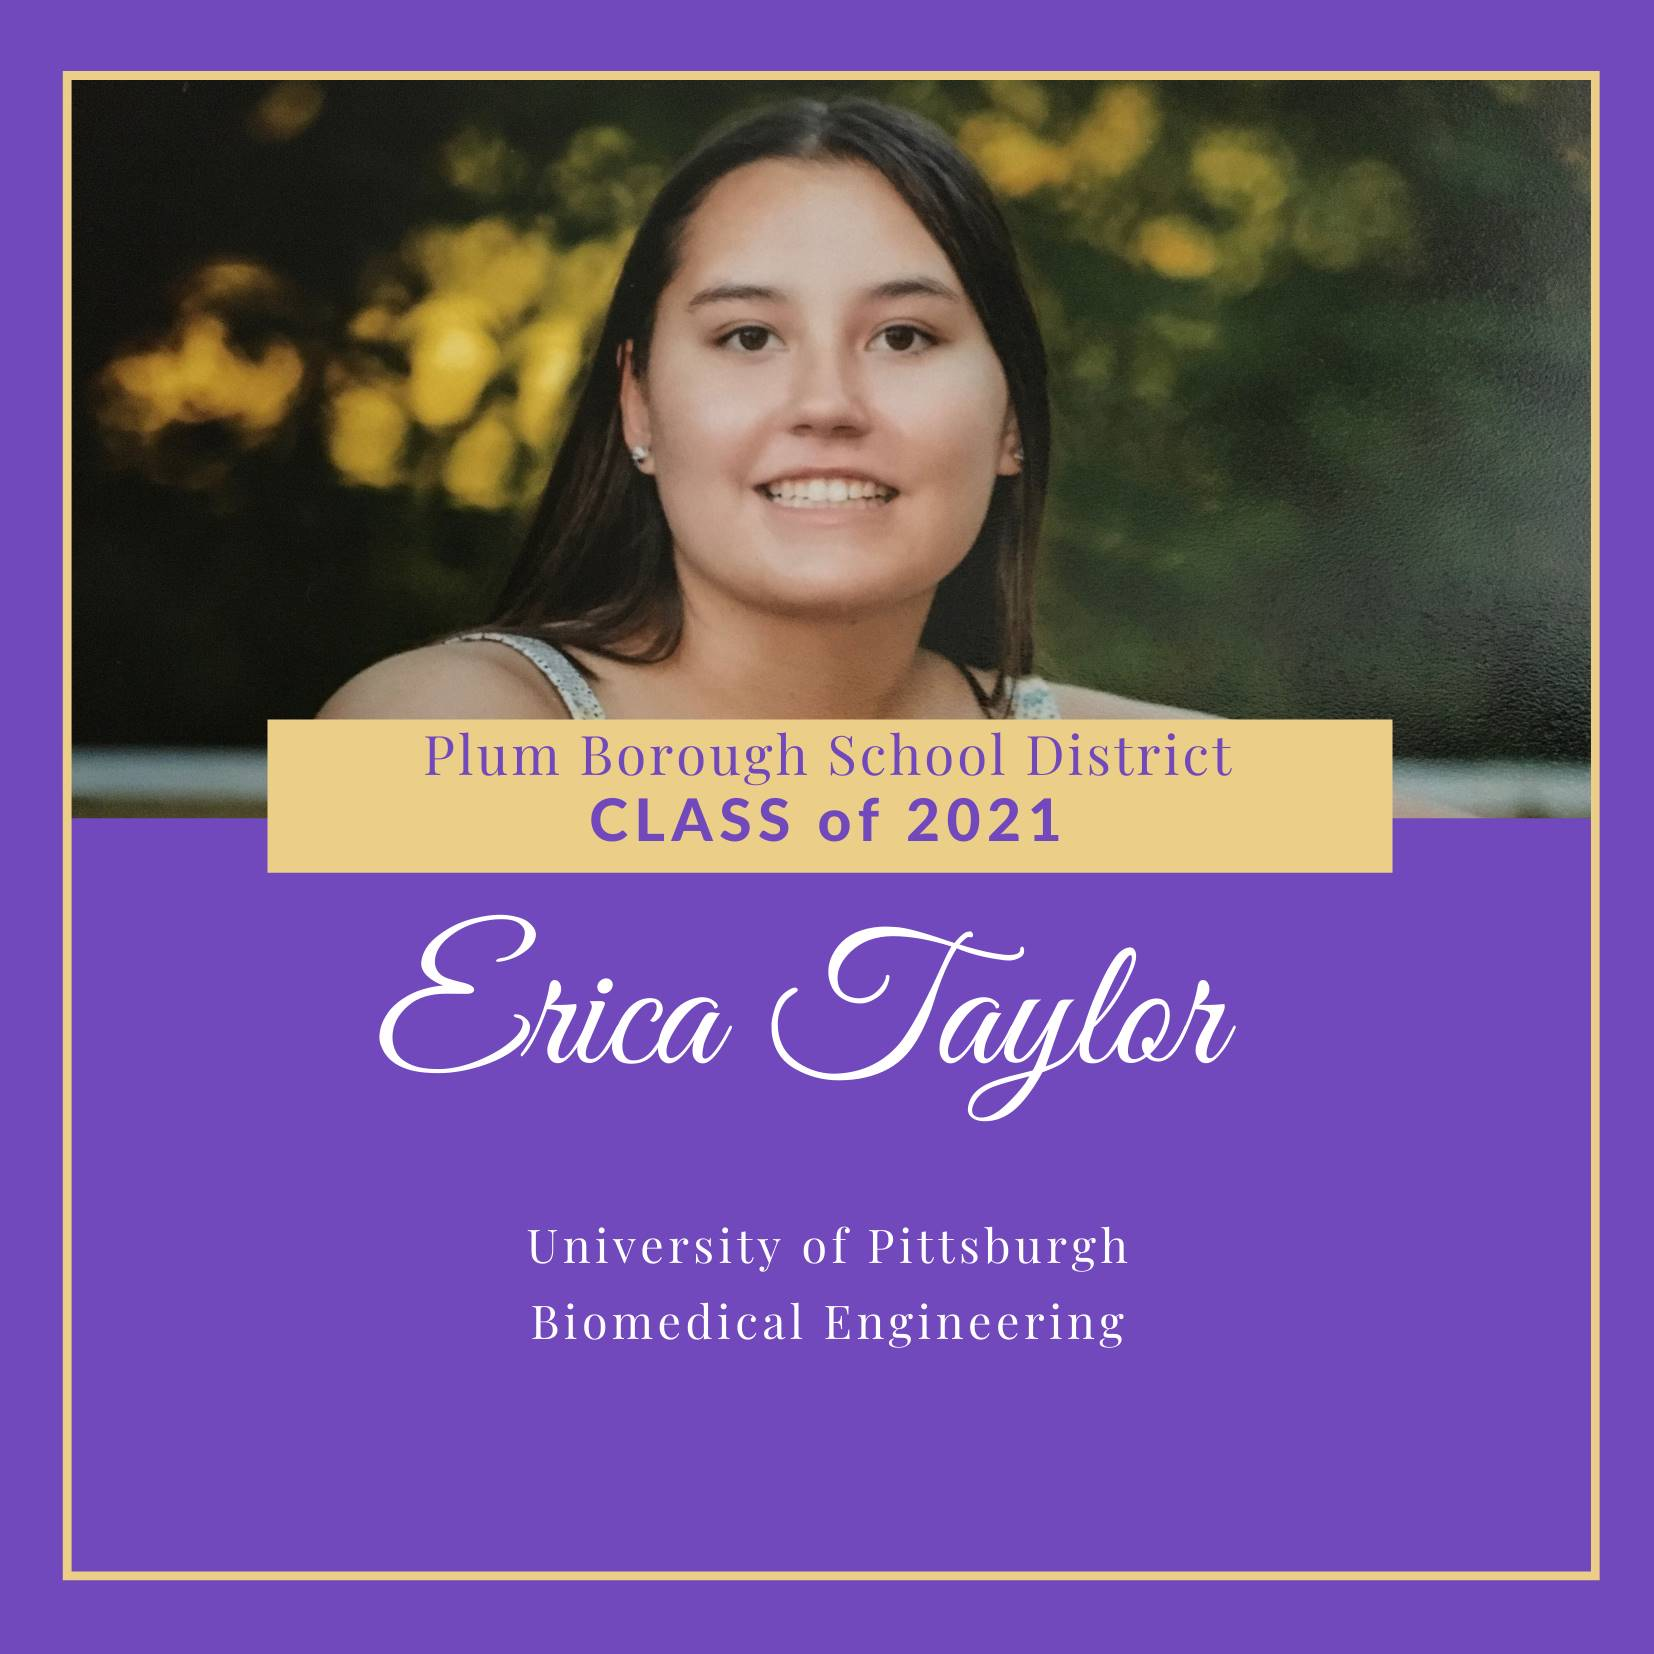 Congratulations to Erin Taylor, Class of 2021!